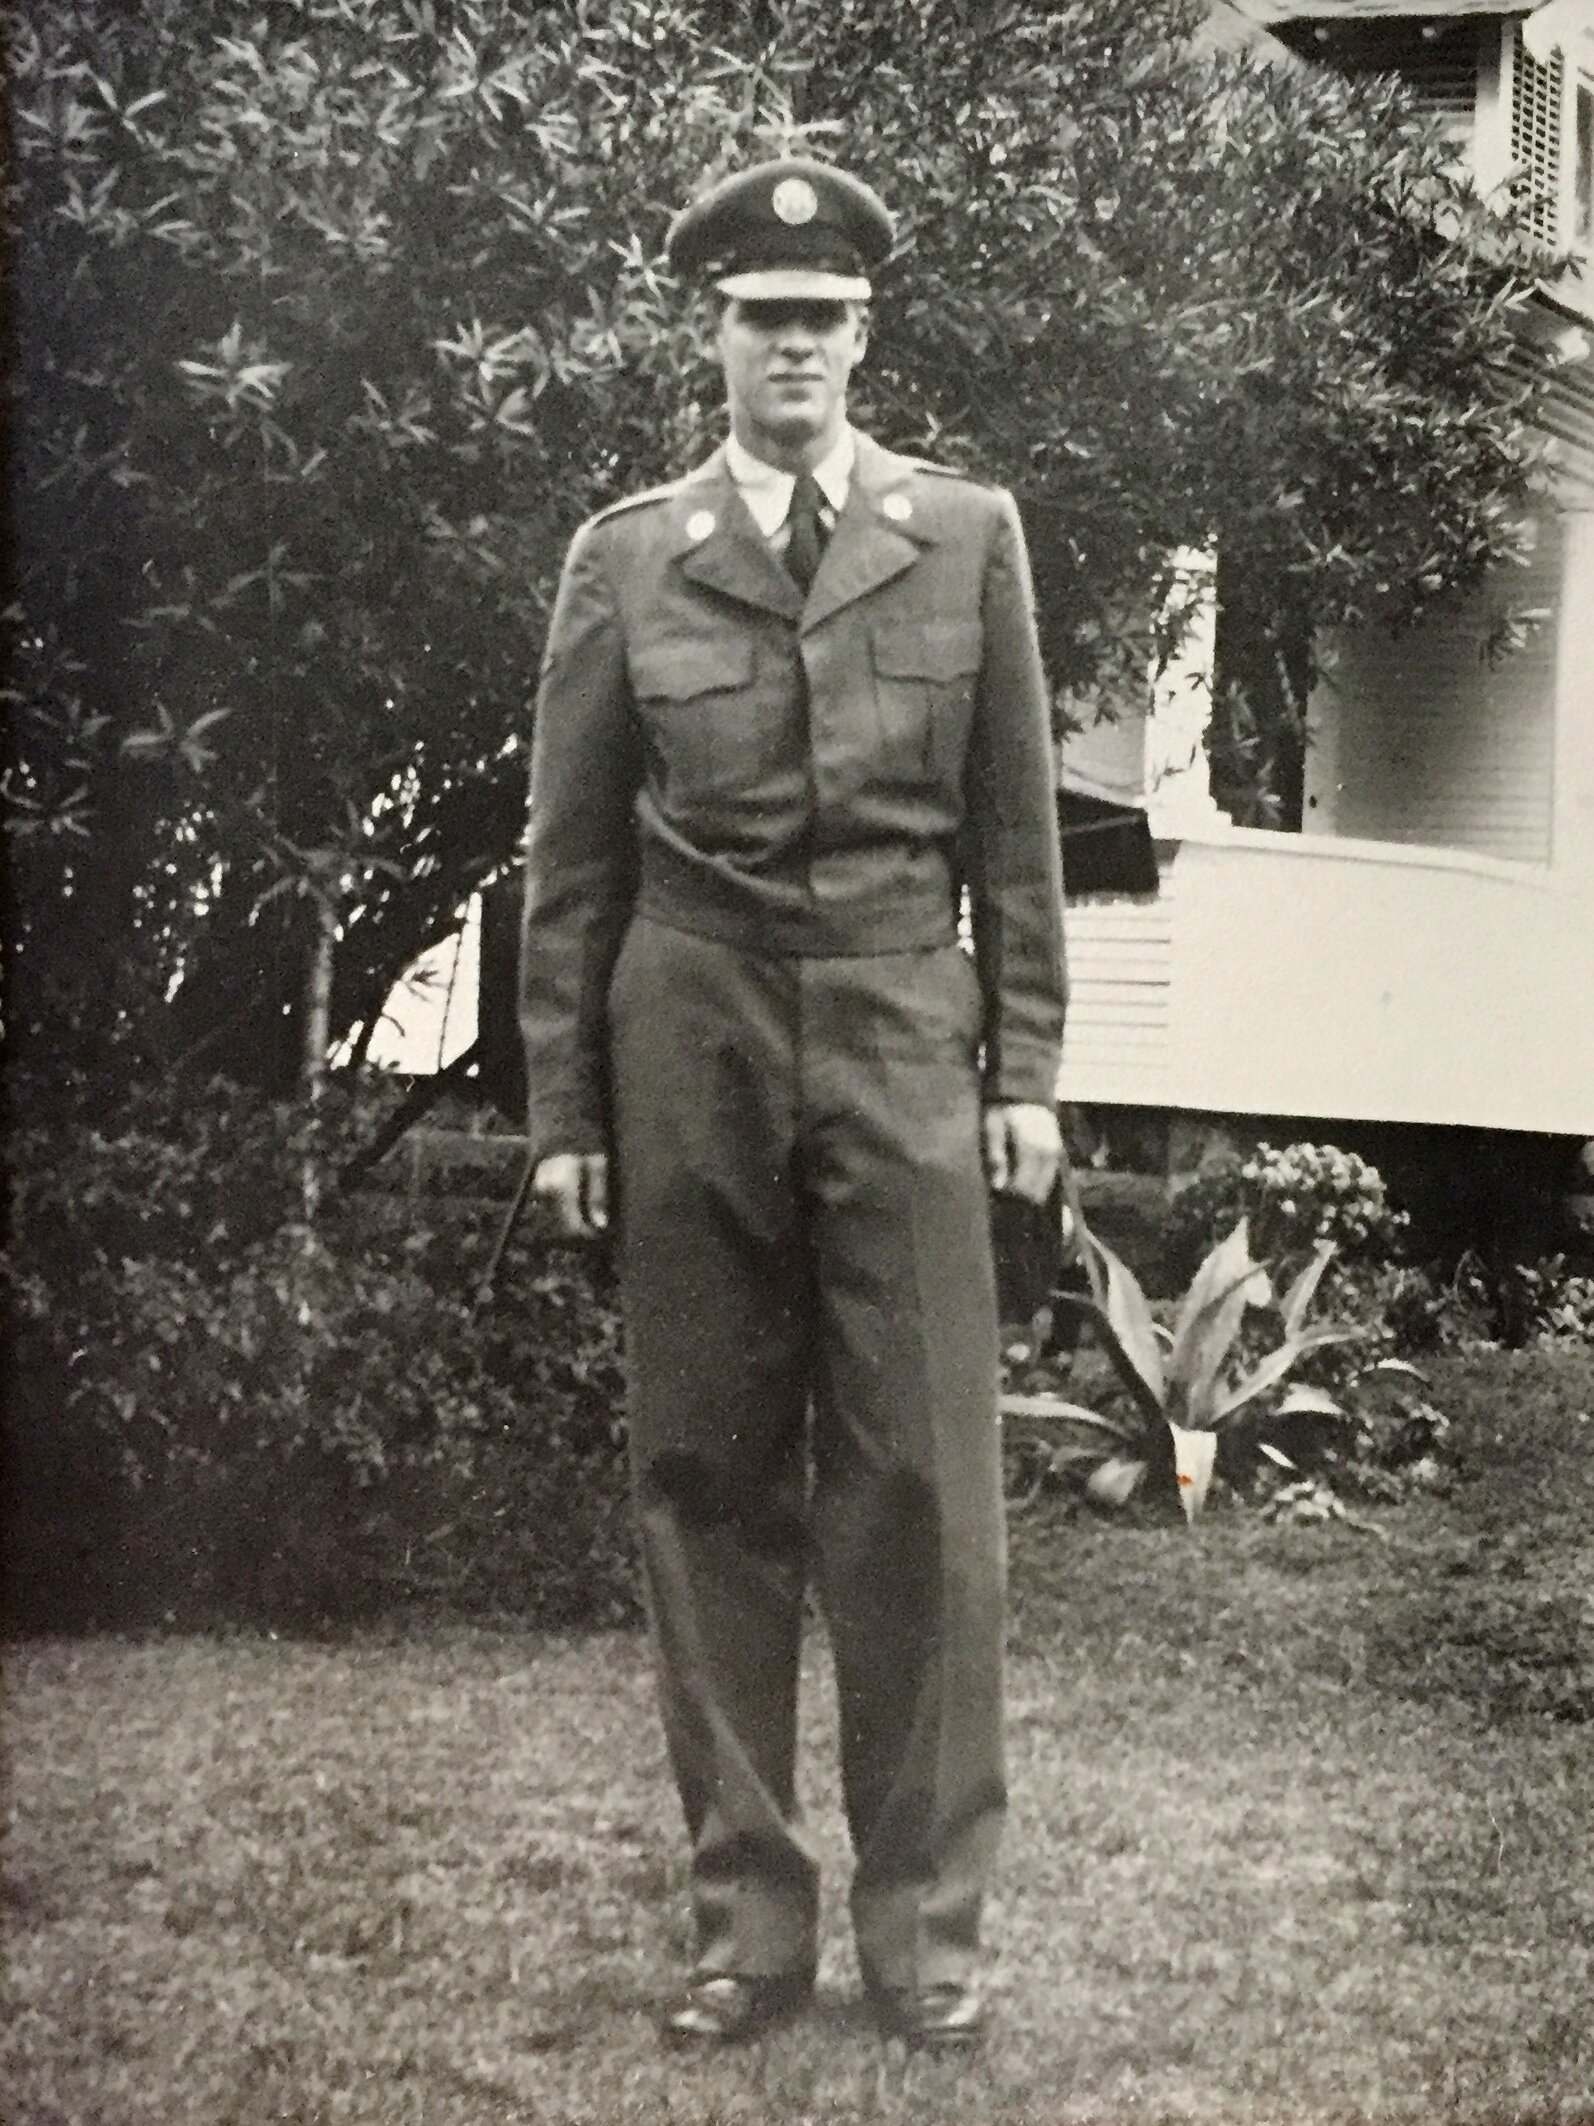 Portrait of Air Force Private Larry L. Meyer, Fall of 1951.